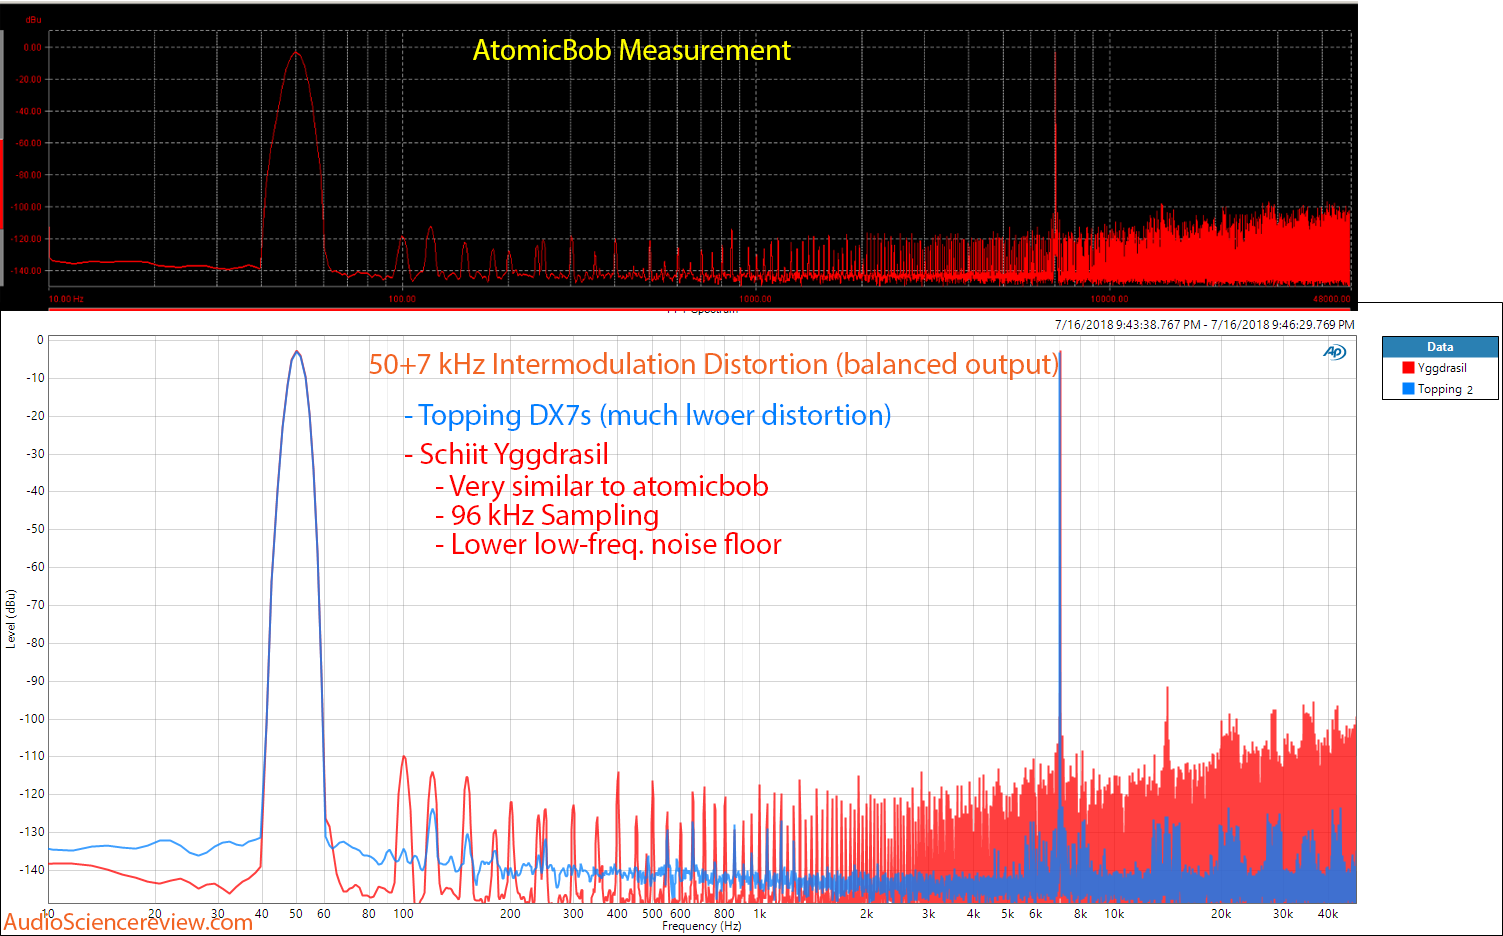 Schiit Yggdrasil DAC 50+70 kHz Intermodulation distortion compared to Topping DX7s Measurement.png